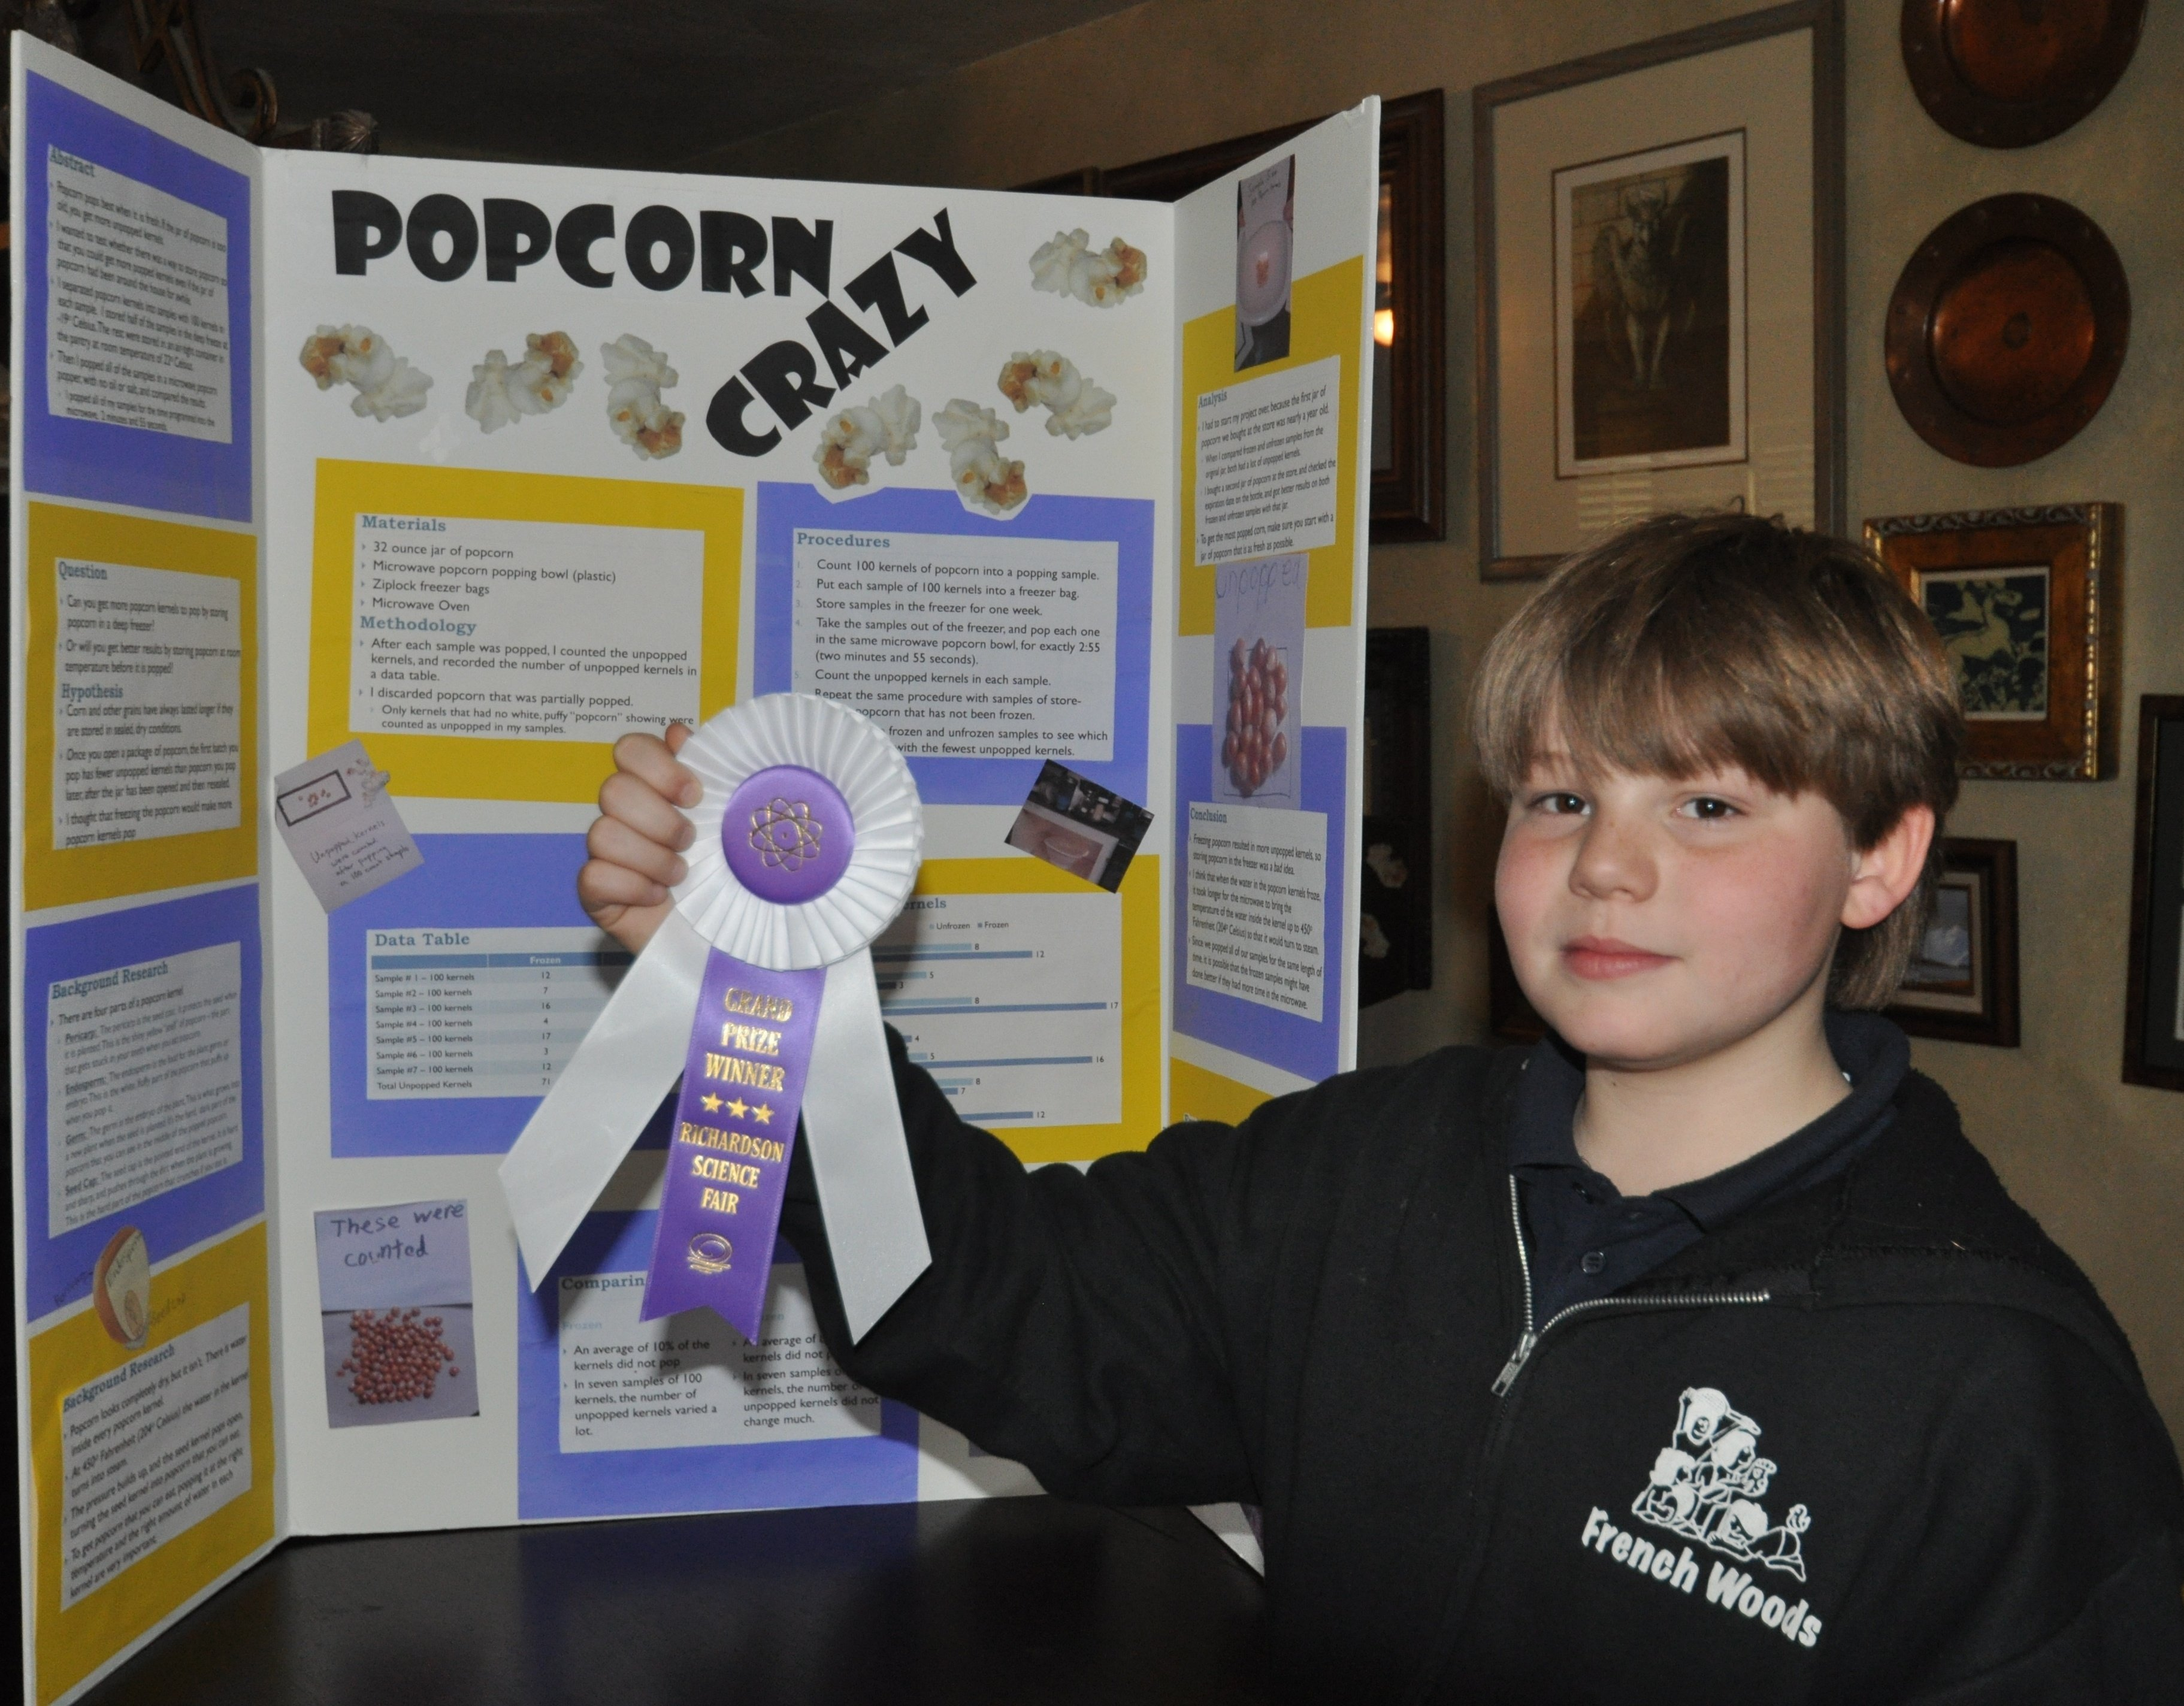 10 Cute 11Th Grade Science Fair Project Ideas how to help your kid win a science fair marketing where technology 23 2020